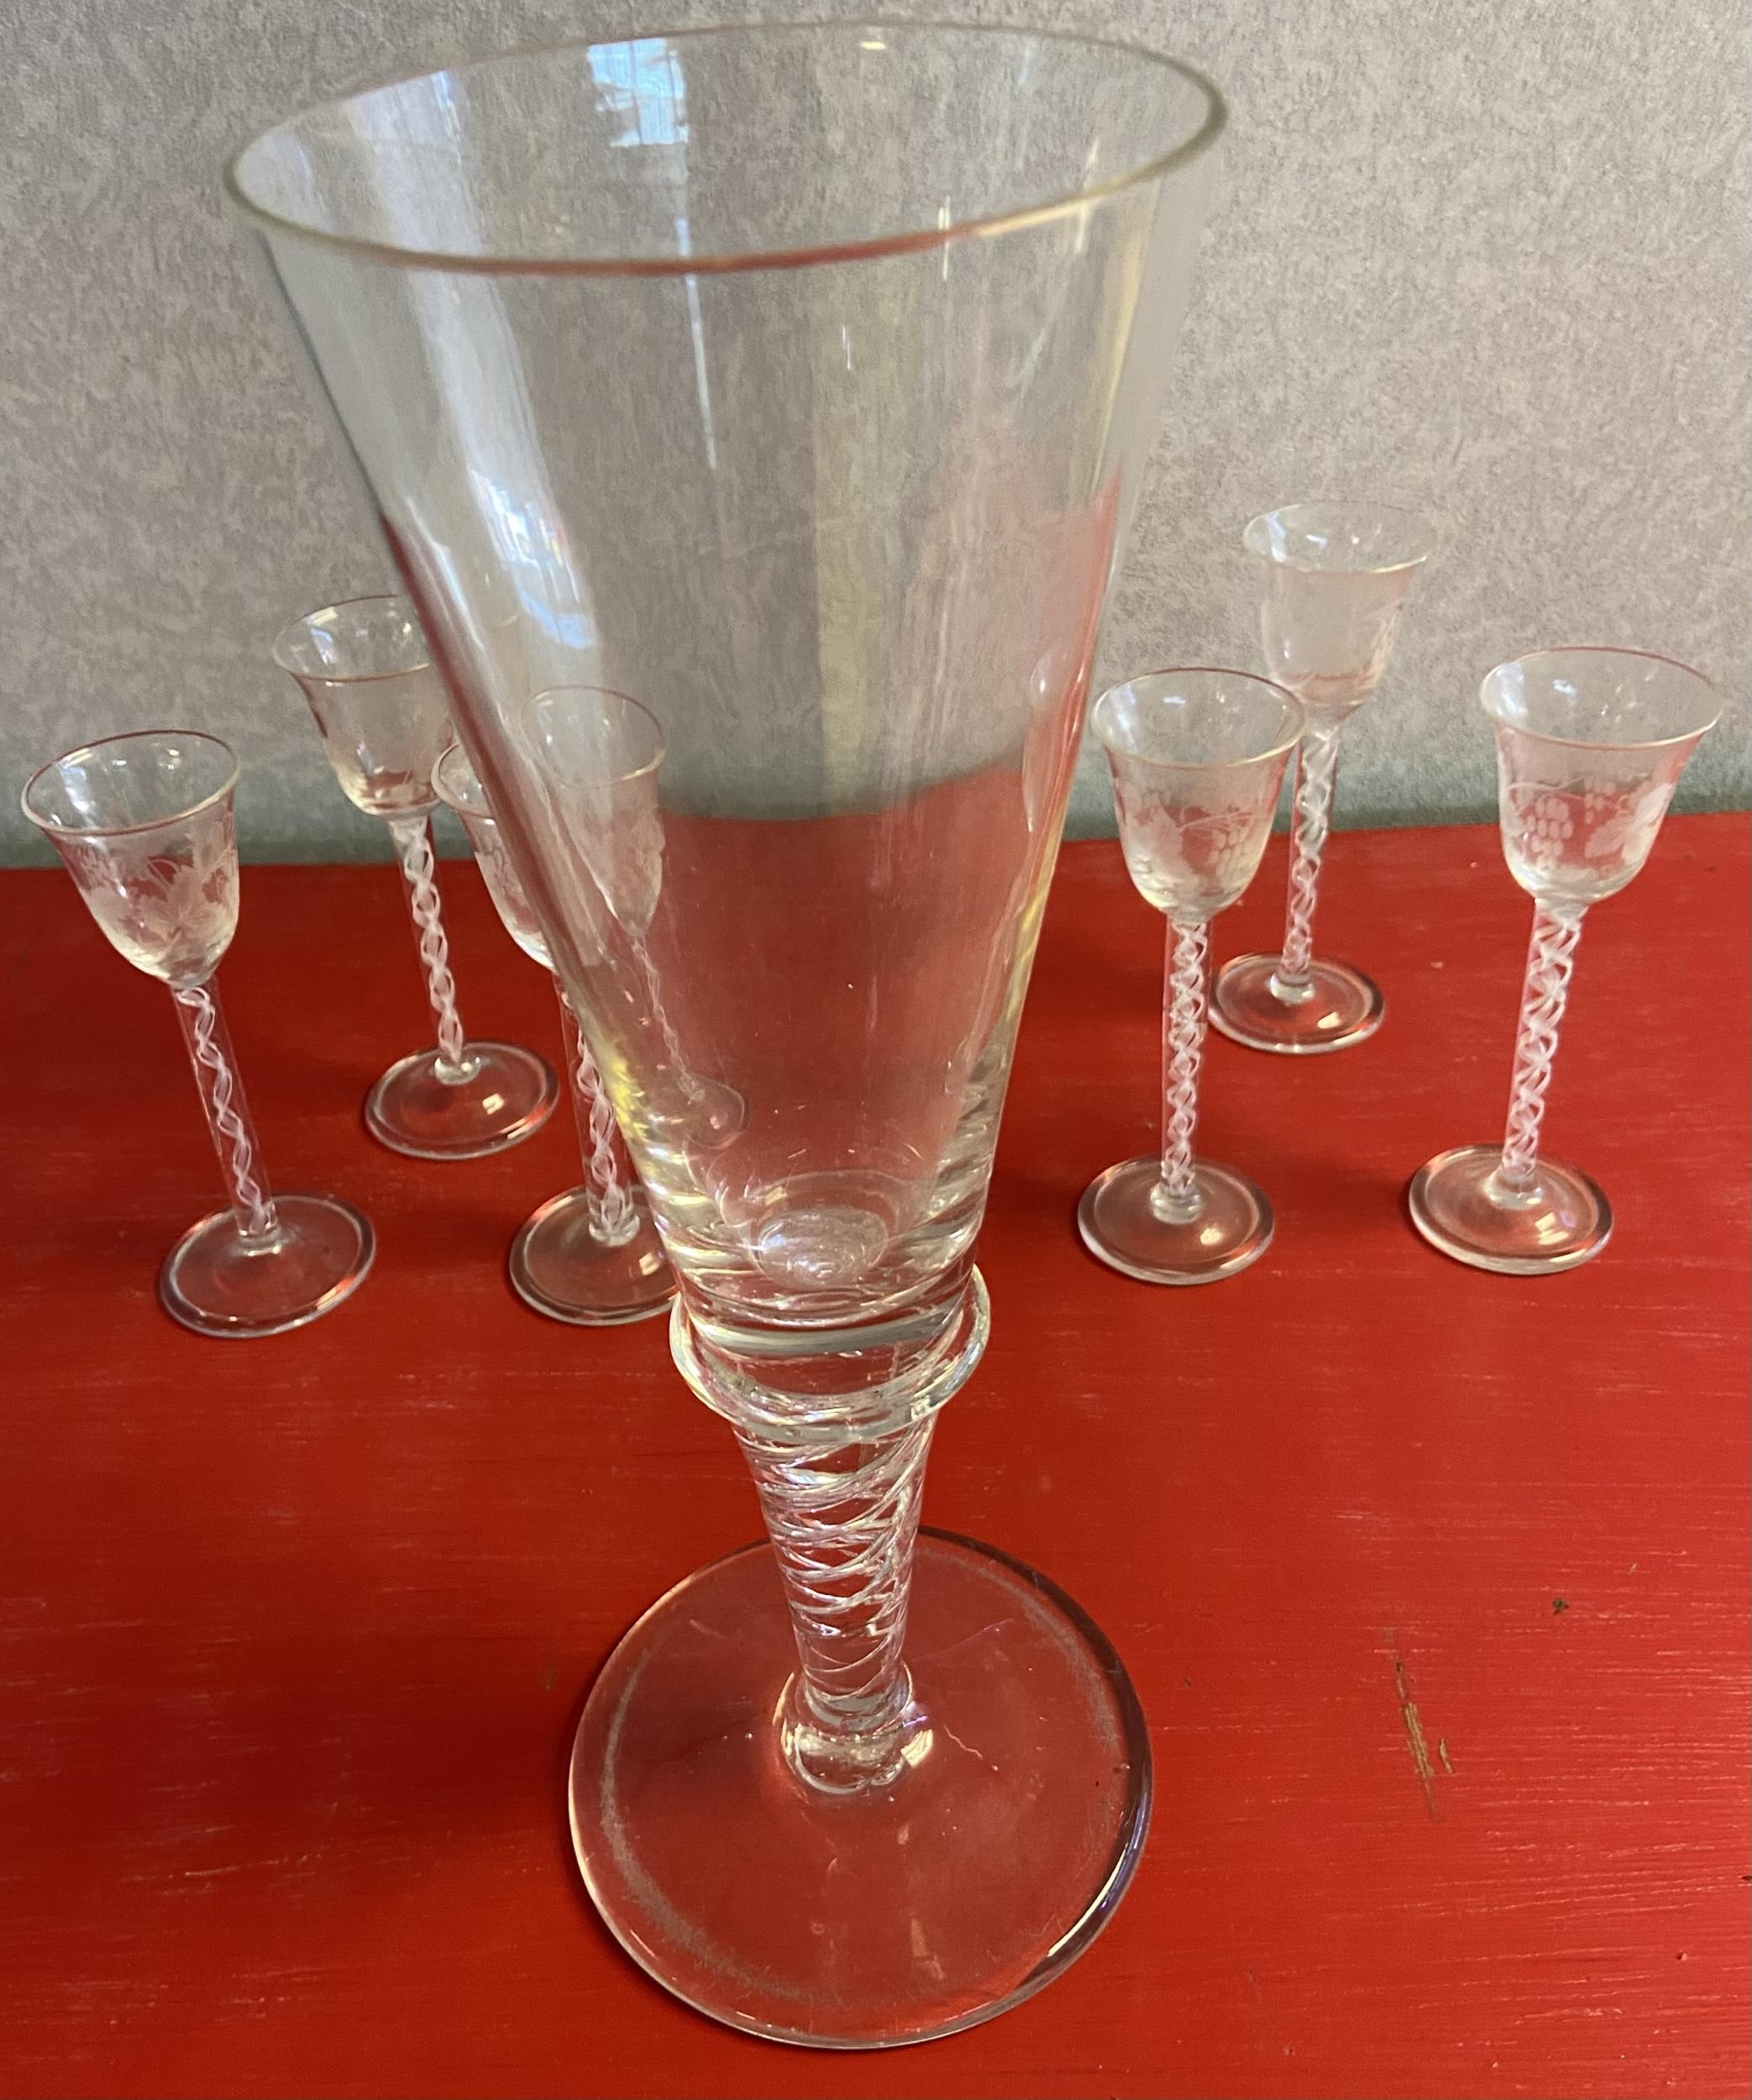 A Set of 6 twist stem free blown sherry glasses, etched with grape vines, Together with a large - Image 4 of 5